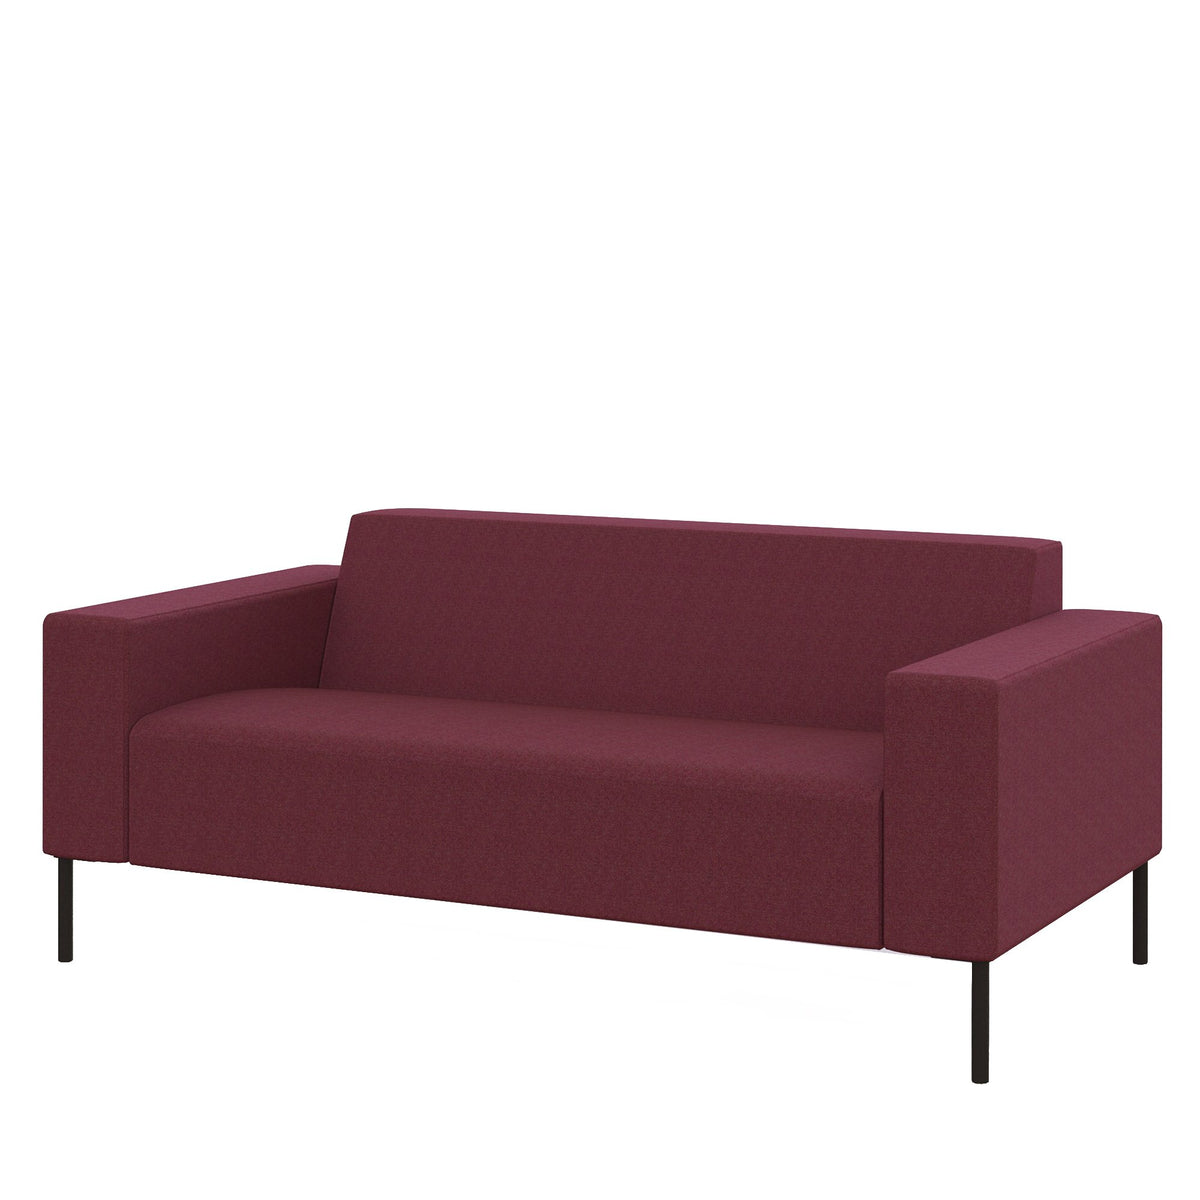 Hitch Mylius HM18 Origin Two Seat Sofa Black Legs Wembley